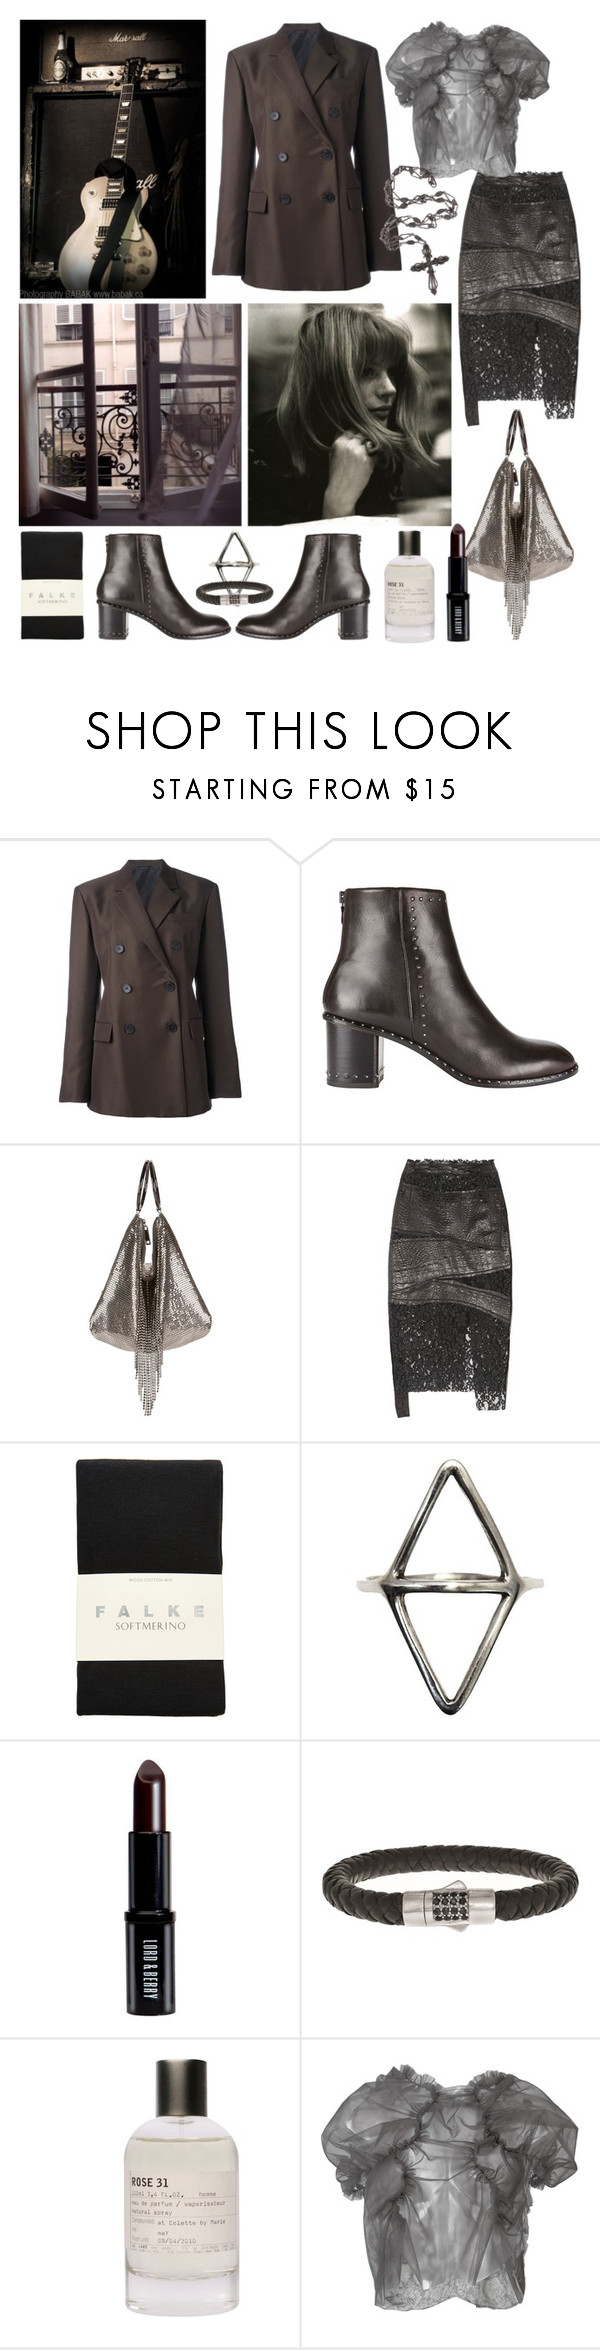 """""""you bring the rain you bring the night"""" by nothingisnormal ❤ liked on Polyvore featuring Jil Sander, rag & bone, Faithfull, Whiting & Davis, RVDK, Falke, Mei-Li Rose, Lord & Berry, Phillip Gavriel and Le Labo"""